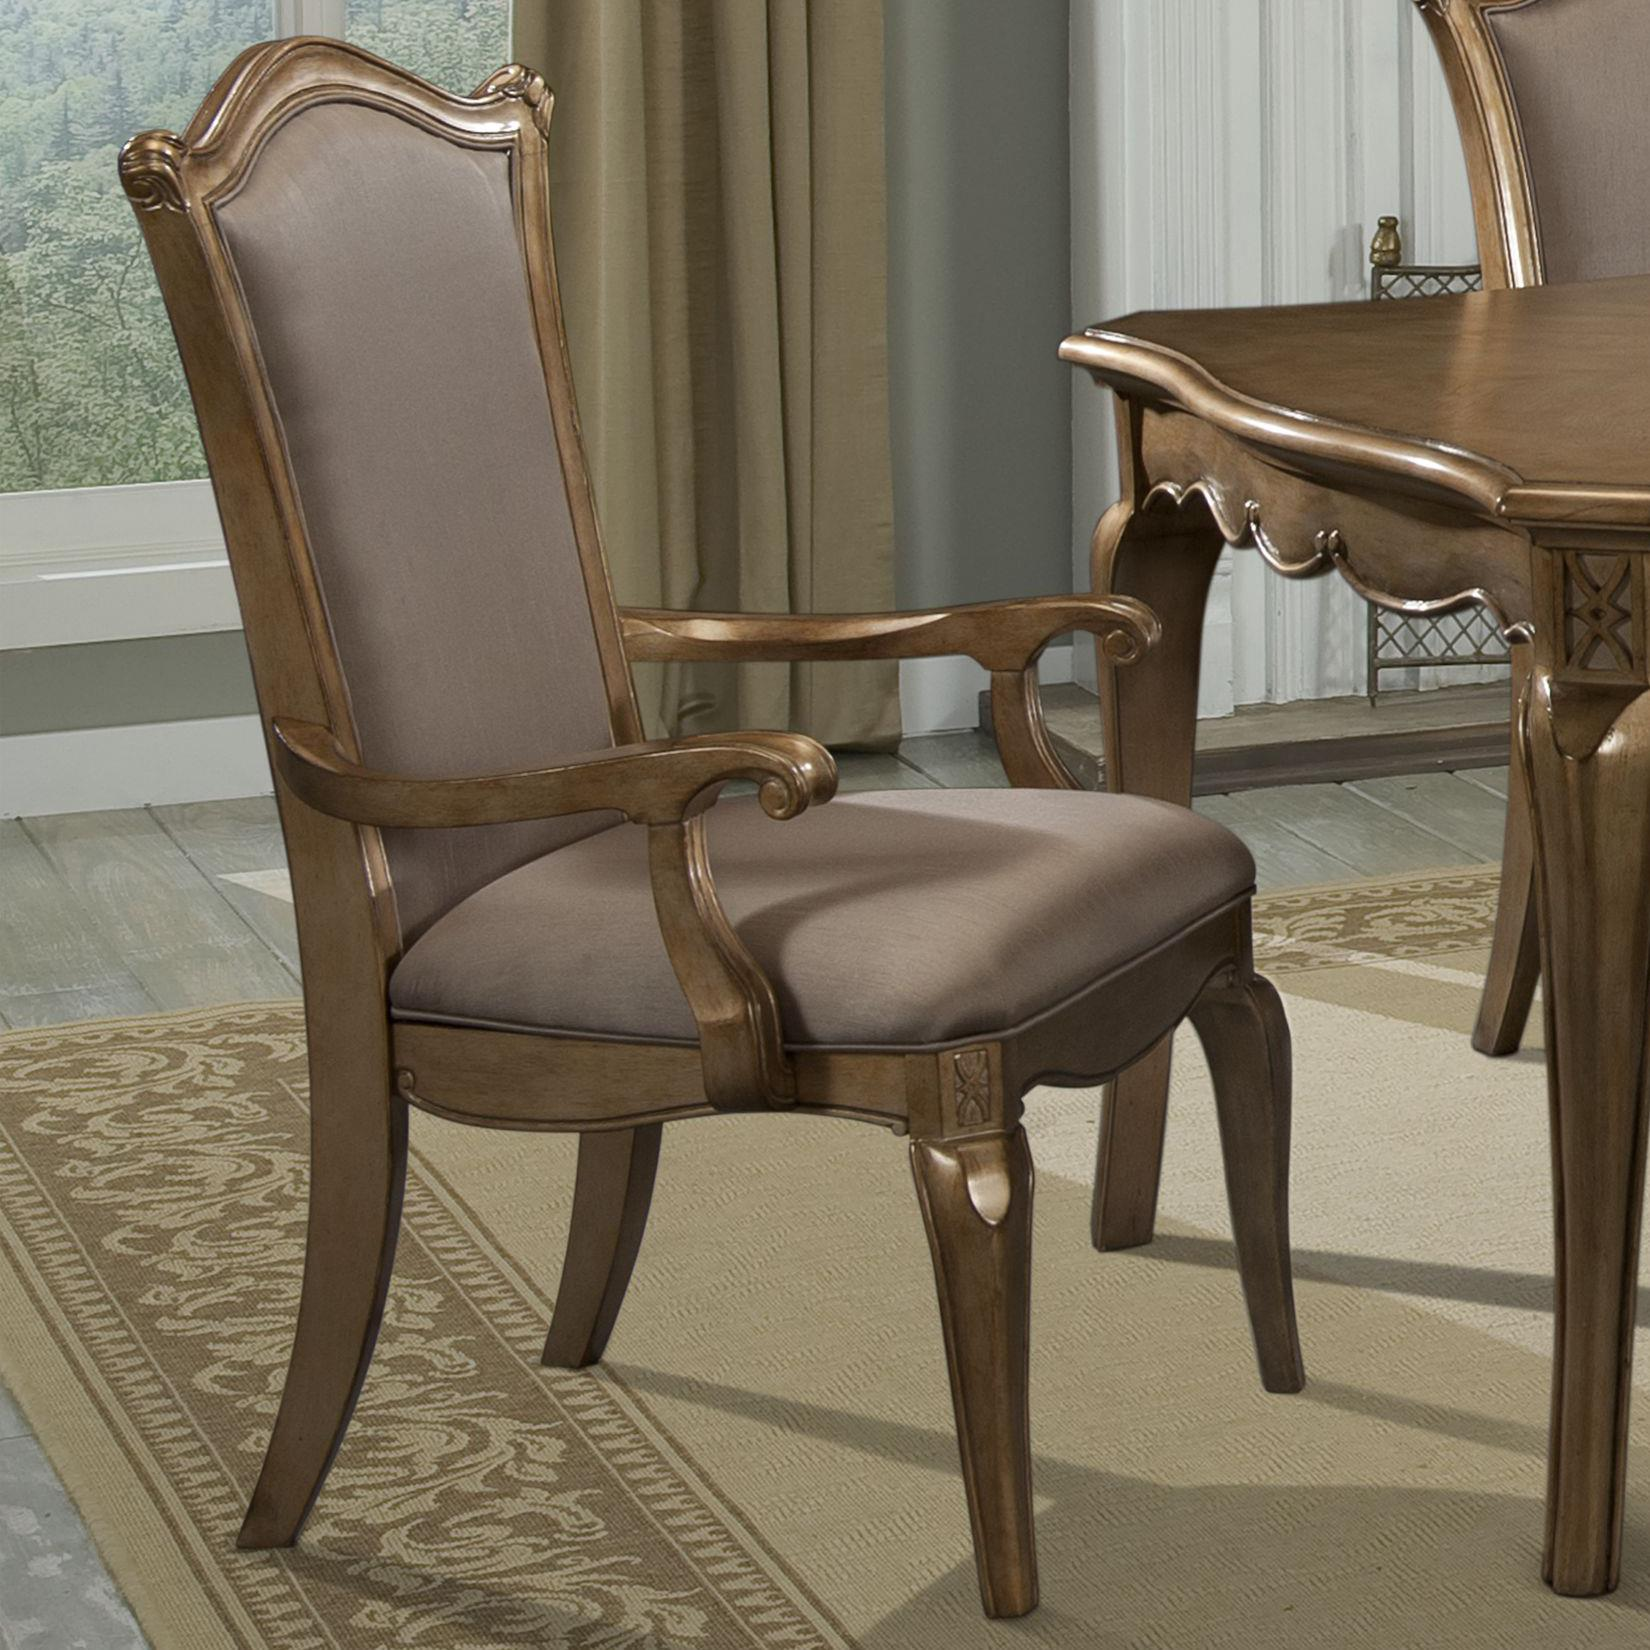 Homelegance Chambord Arm Chair - Item Number: 1828A